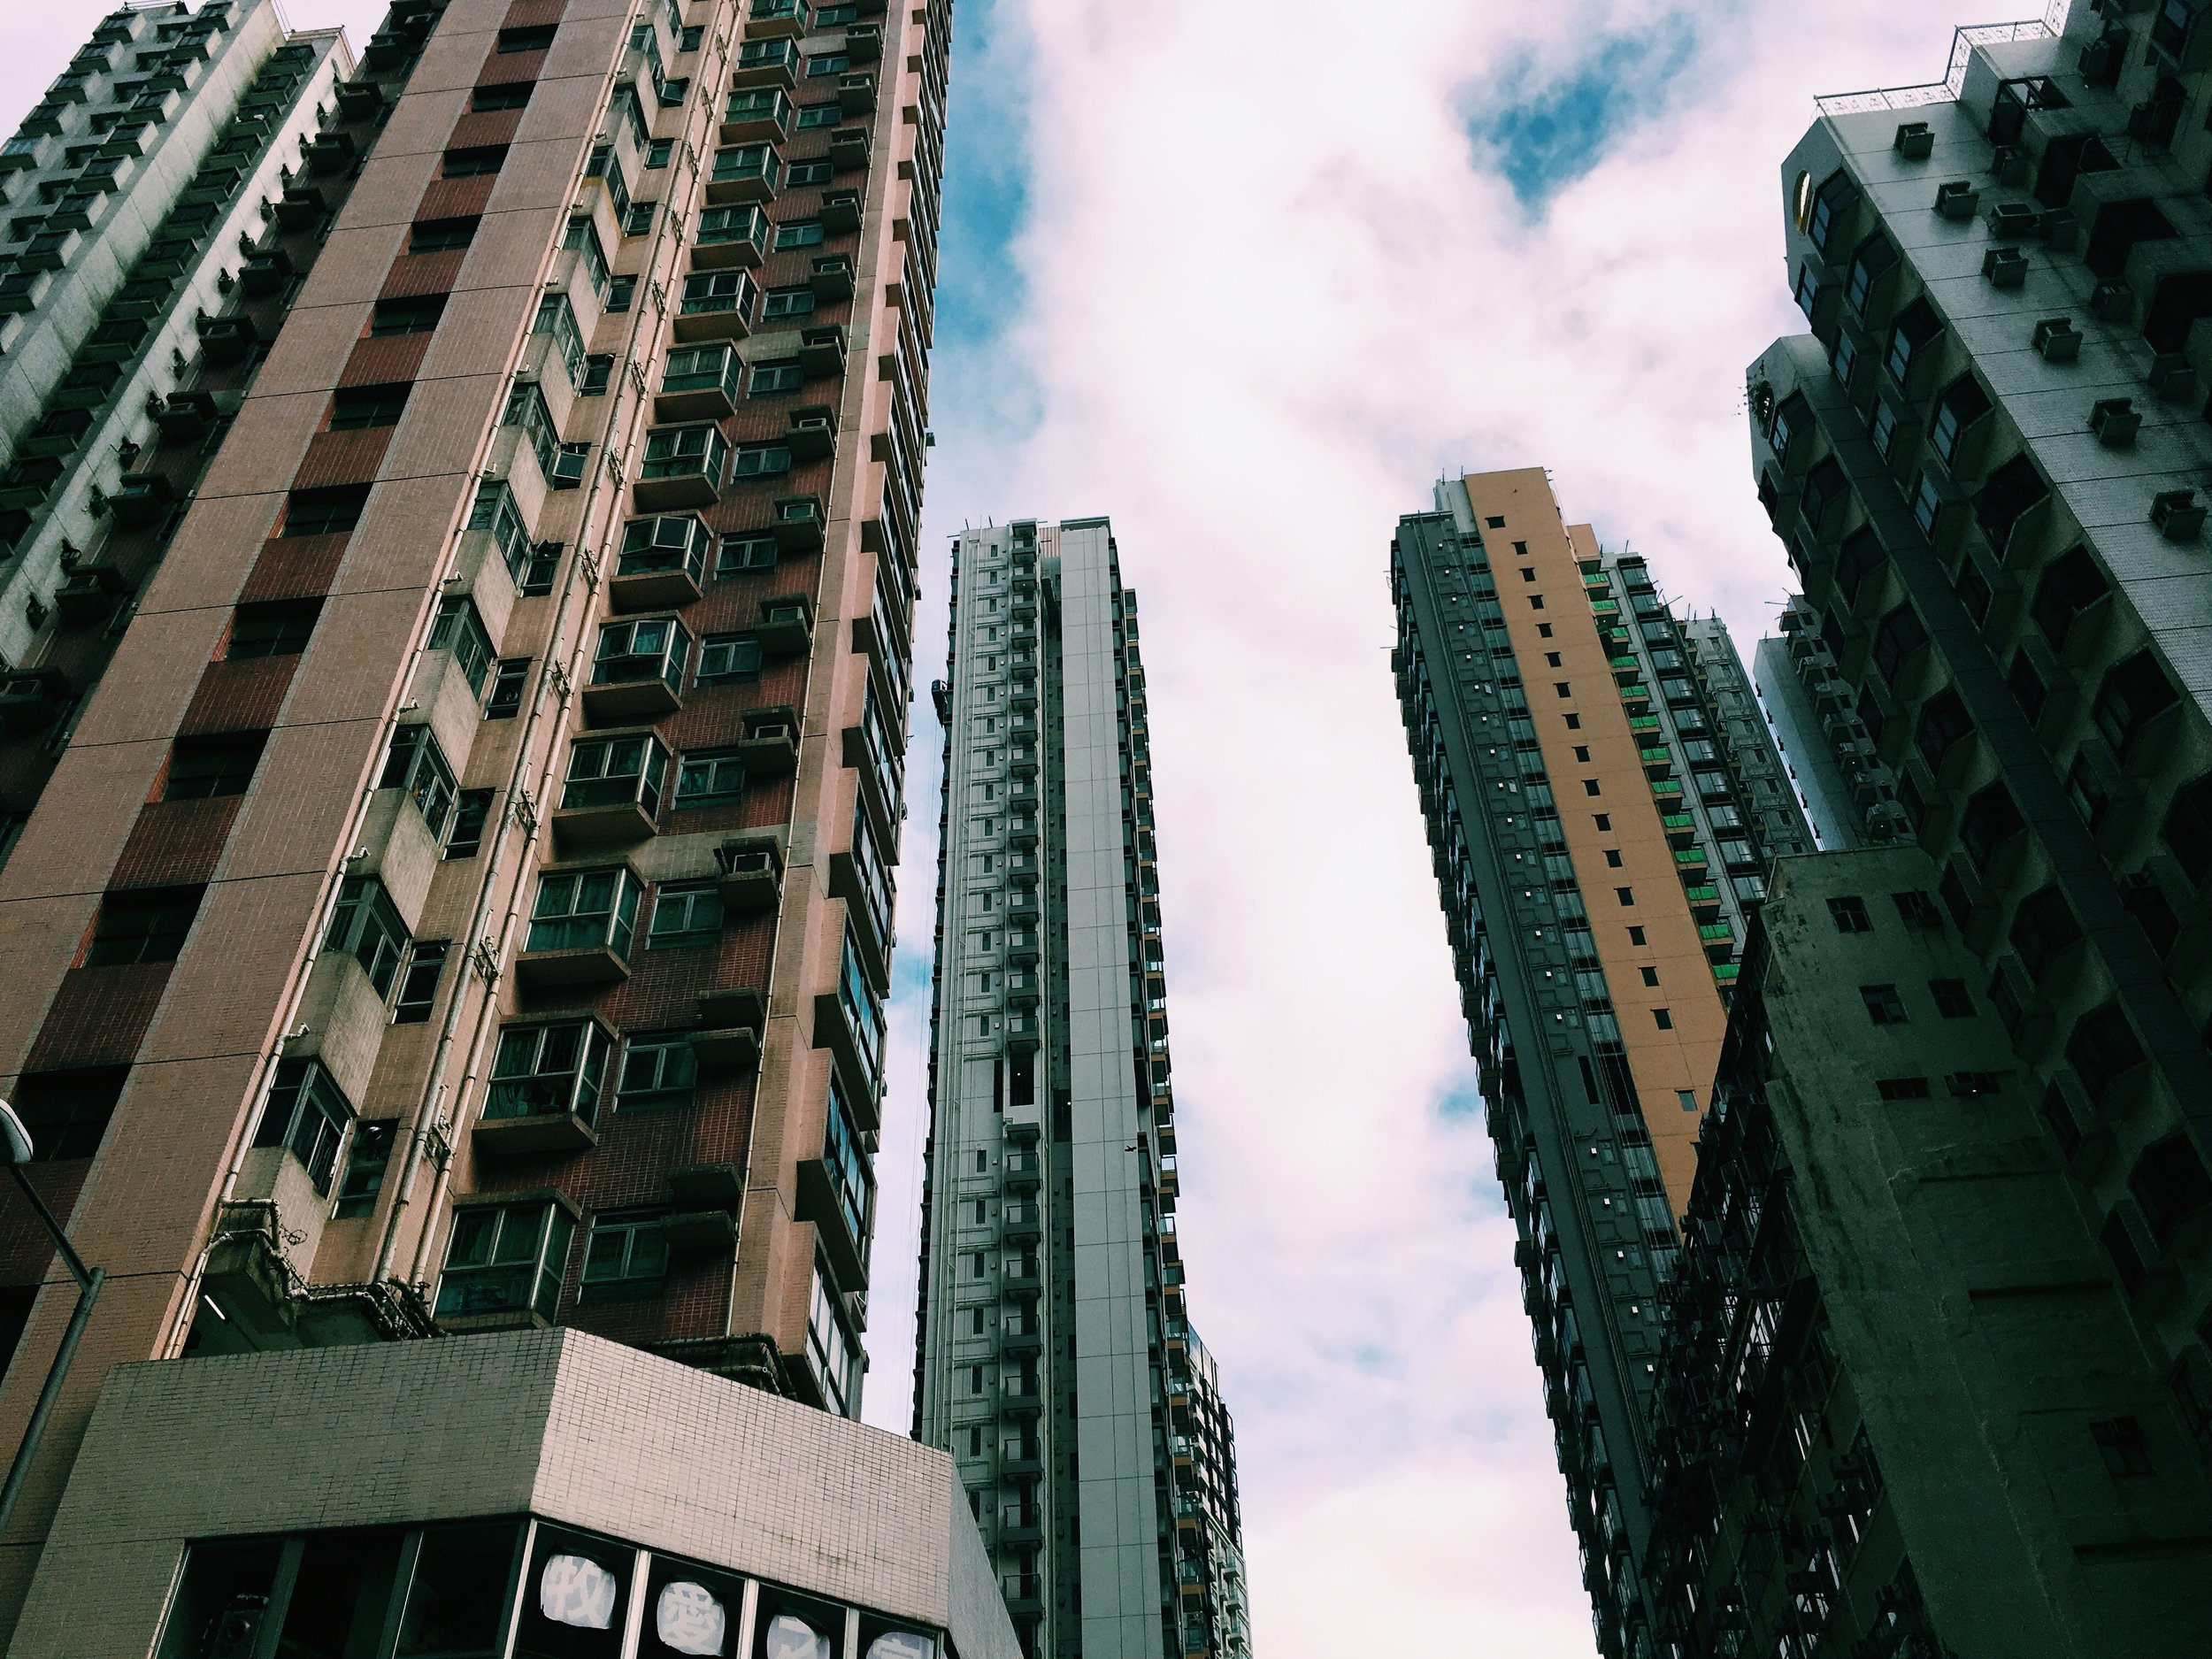 Apartments look similar and exist as new and old right next to each other in Hong Kong.